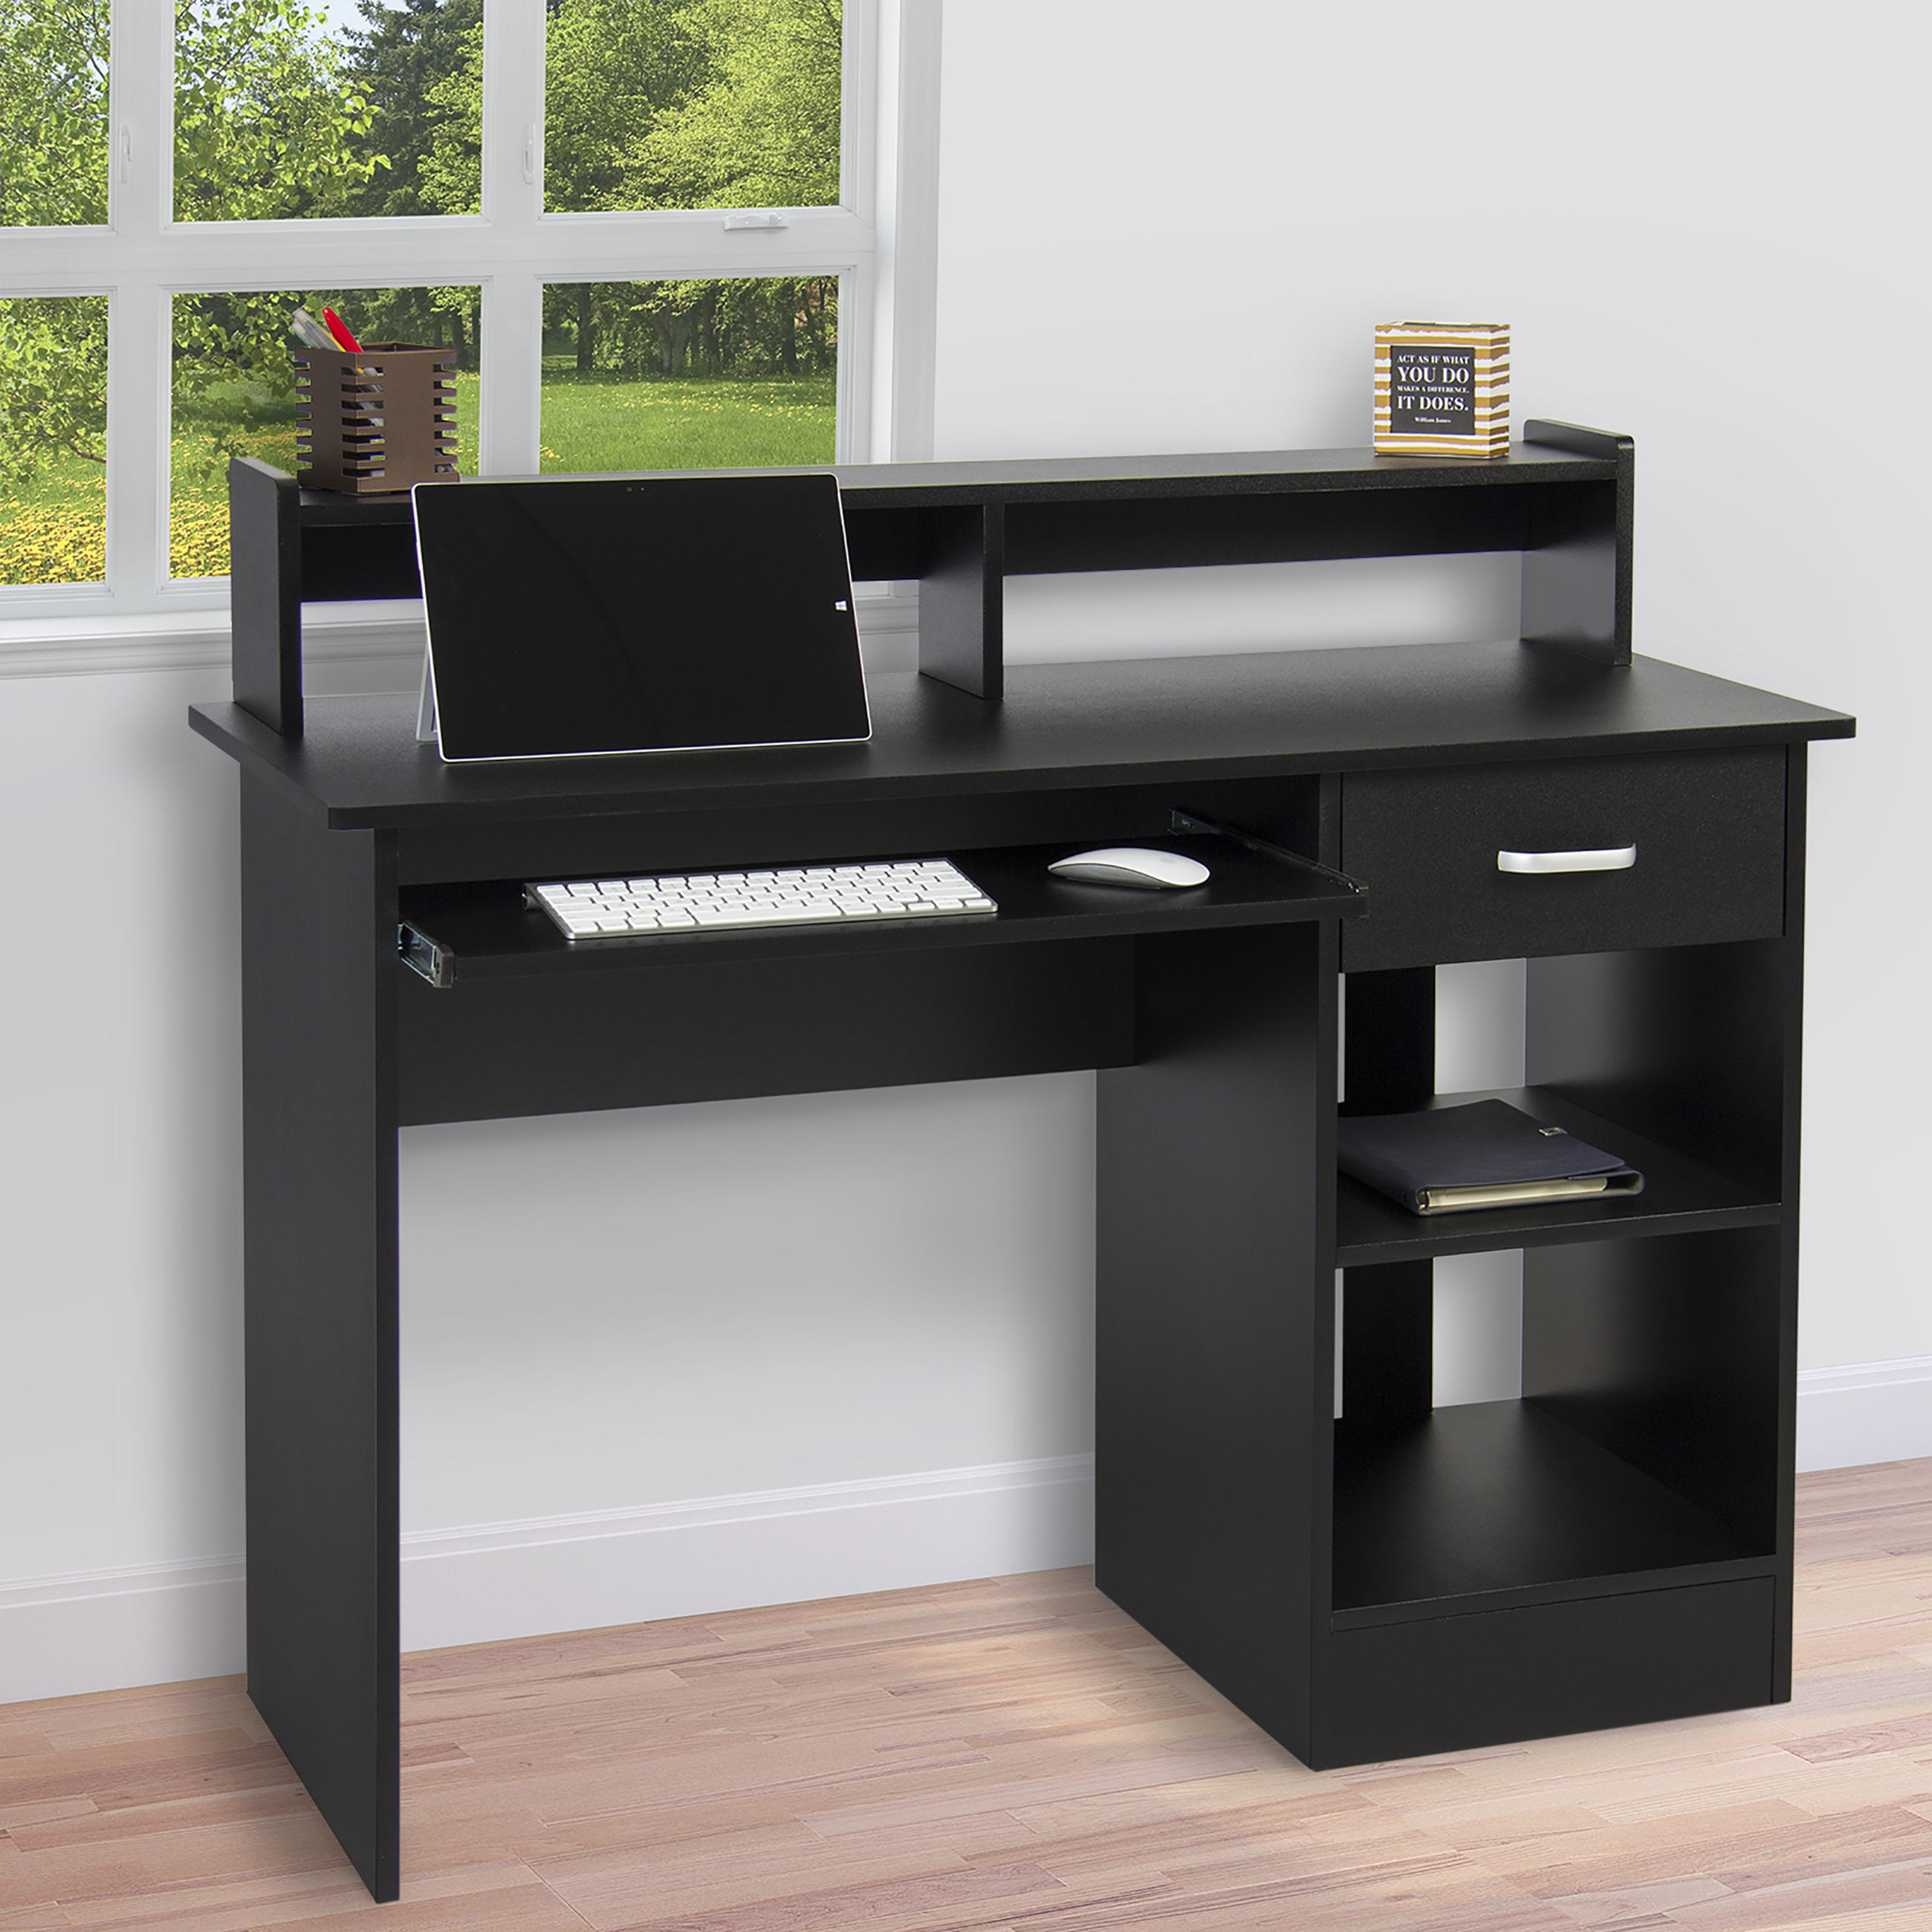 Best Choice Products Computer Desk Home Laptop Table College Home Office  Furniture Work Station   Black